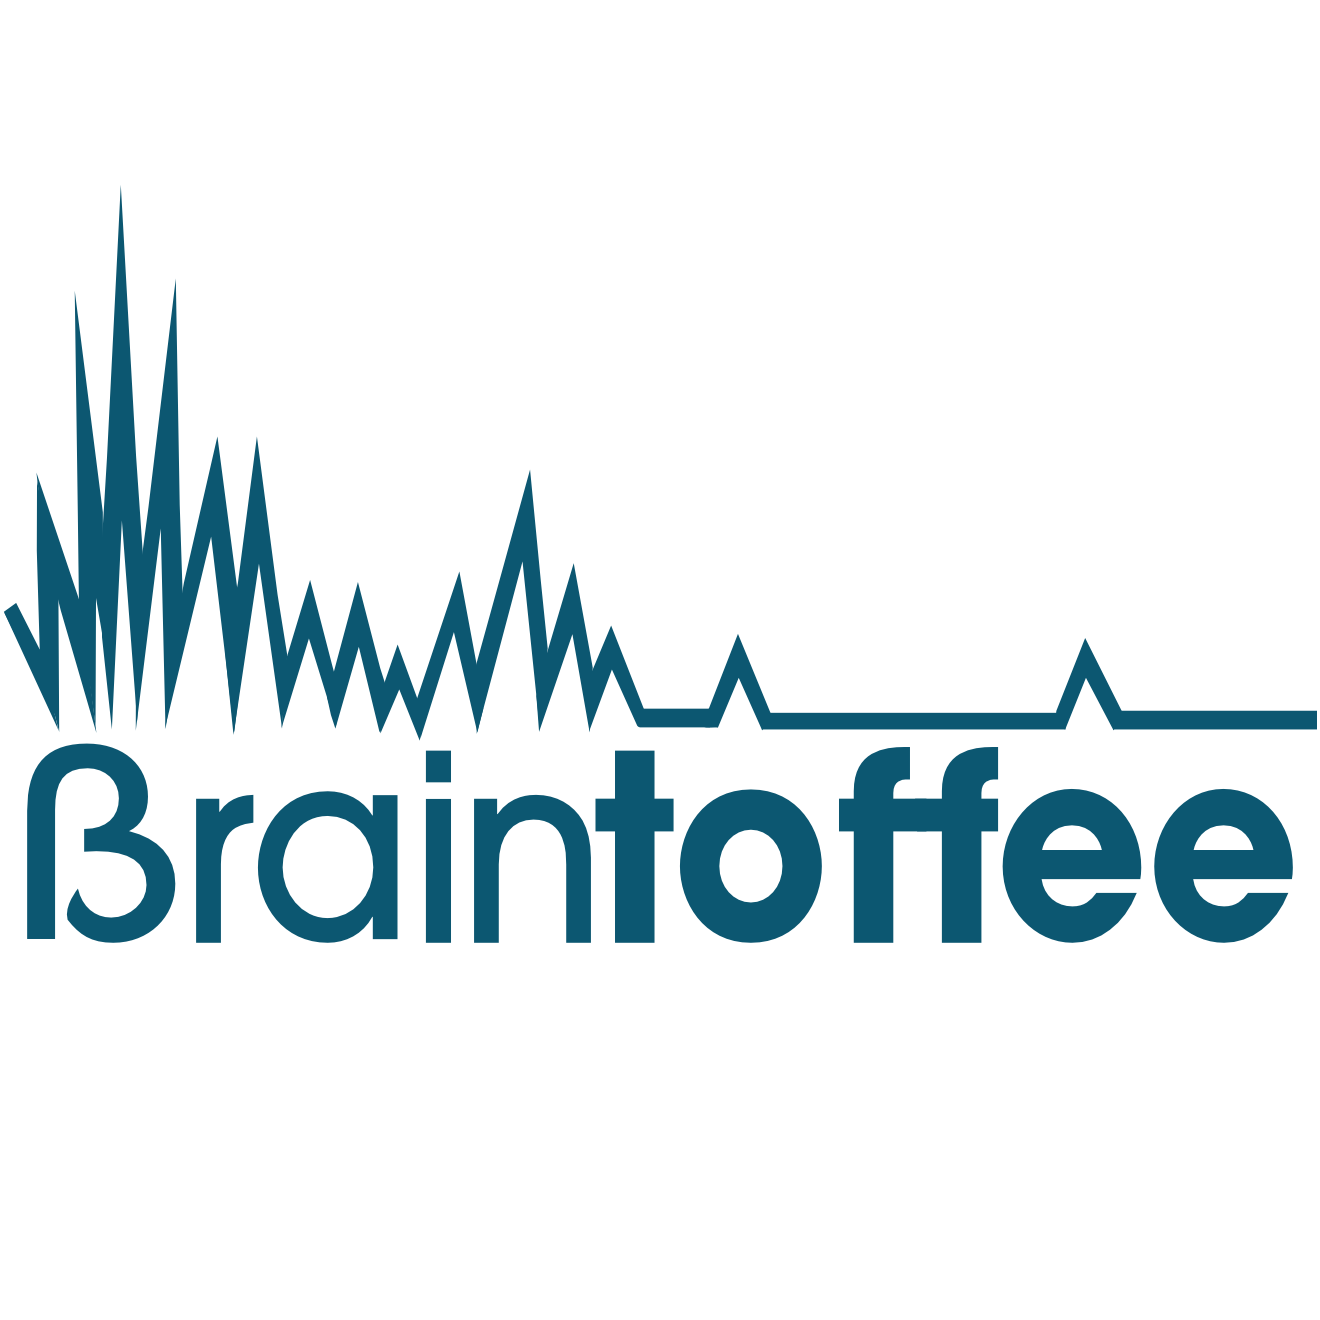 Braintoffee Problem Solving Activities